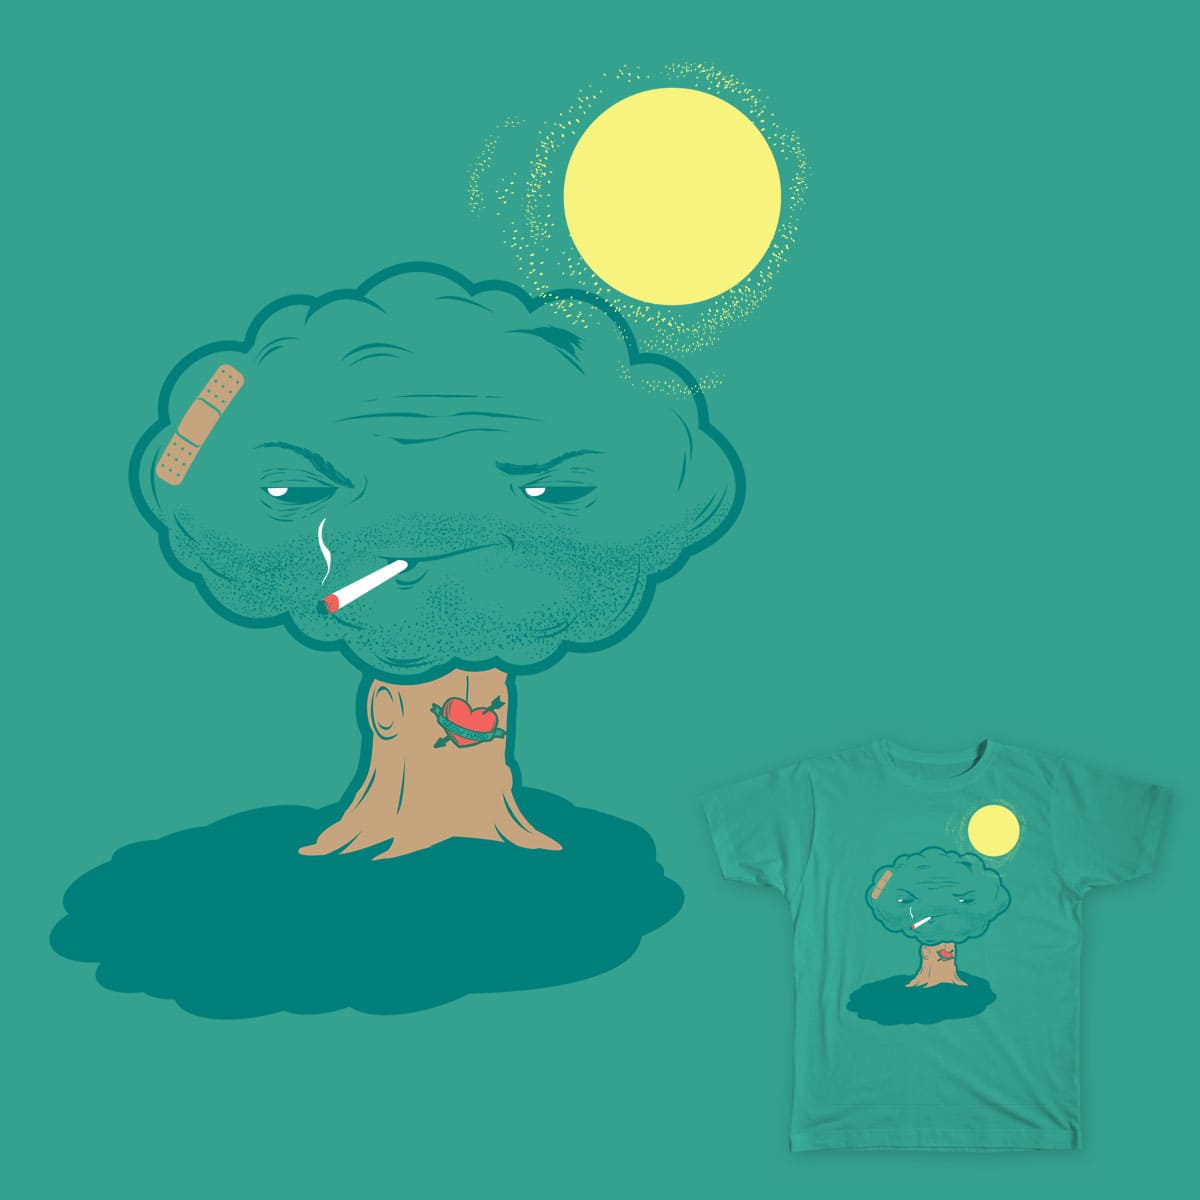 That tree looks shady. by dnice25 on Threadless